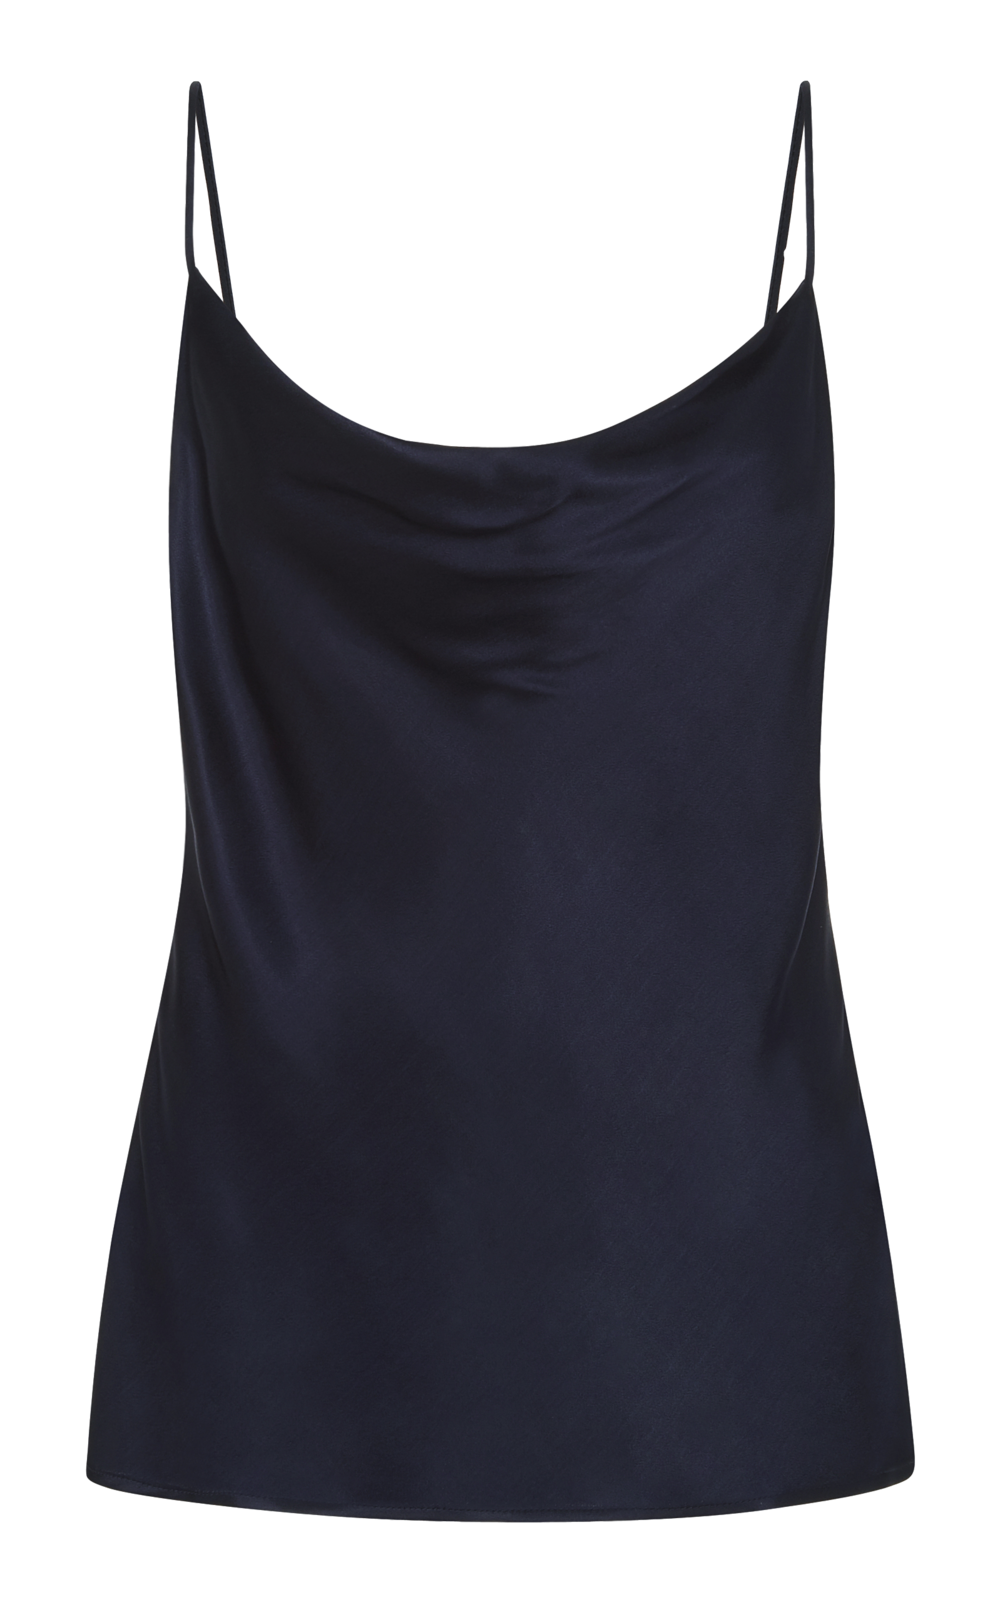 https-__www.modaoperandi.com_protagonist-pf17_m-o-exclusive-silk-charmeuse-camisole_clipped_rev_1.png